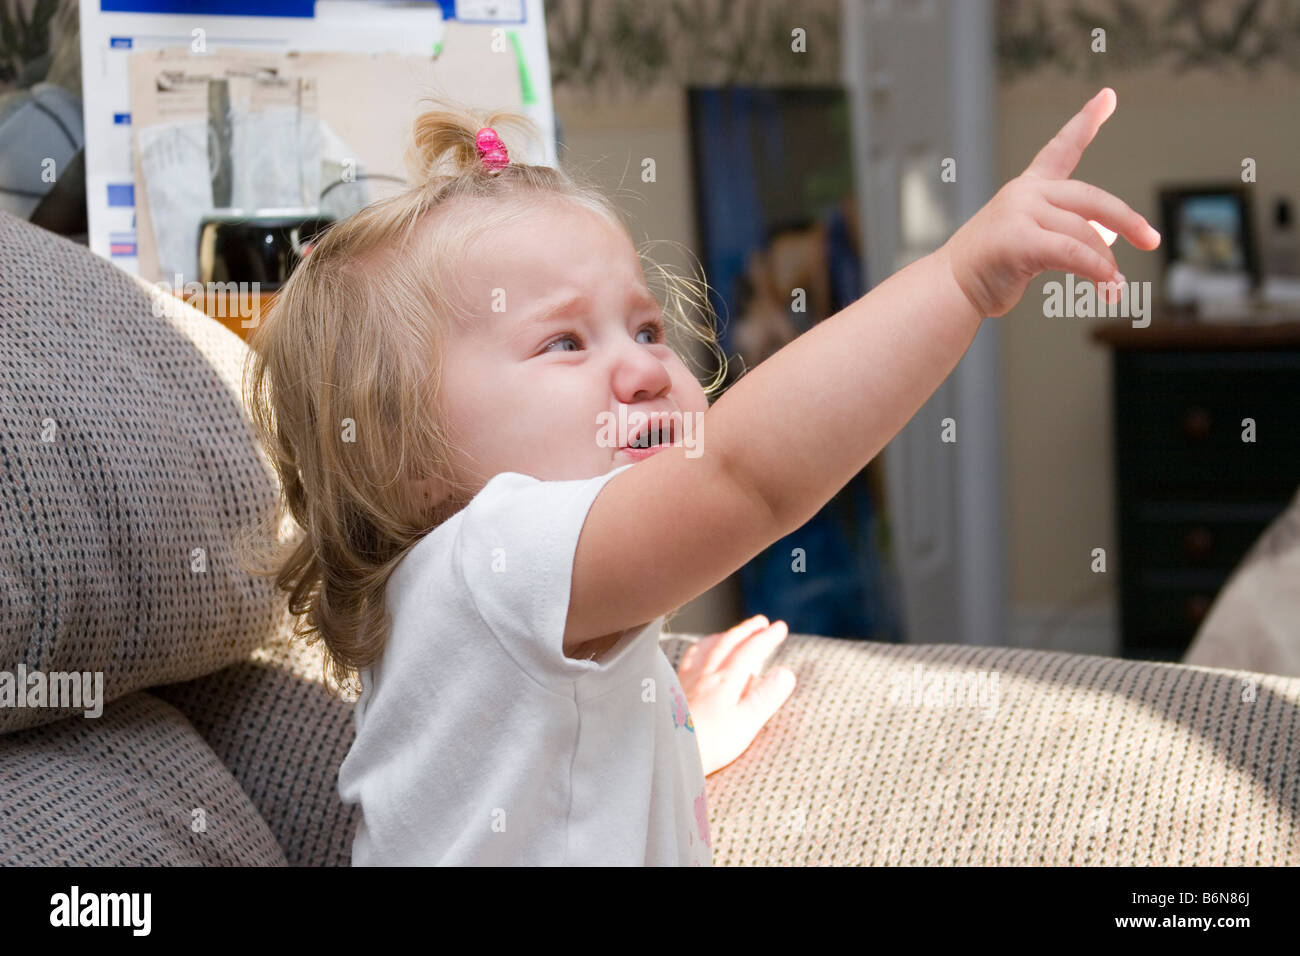 1 to 2 year old toddler girl upset and crying having tantrum - Stock Image